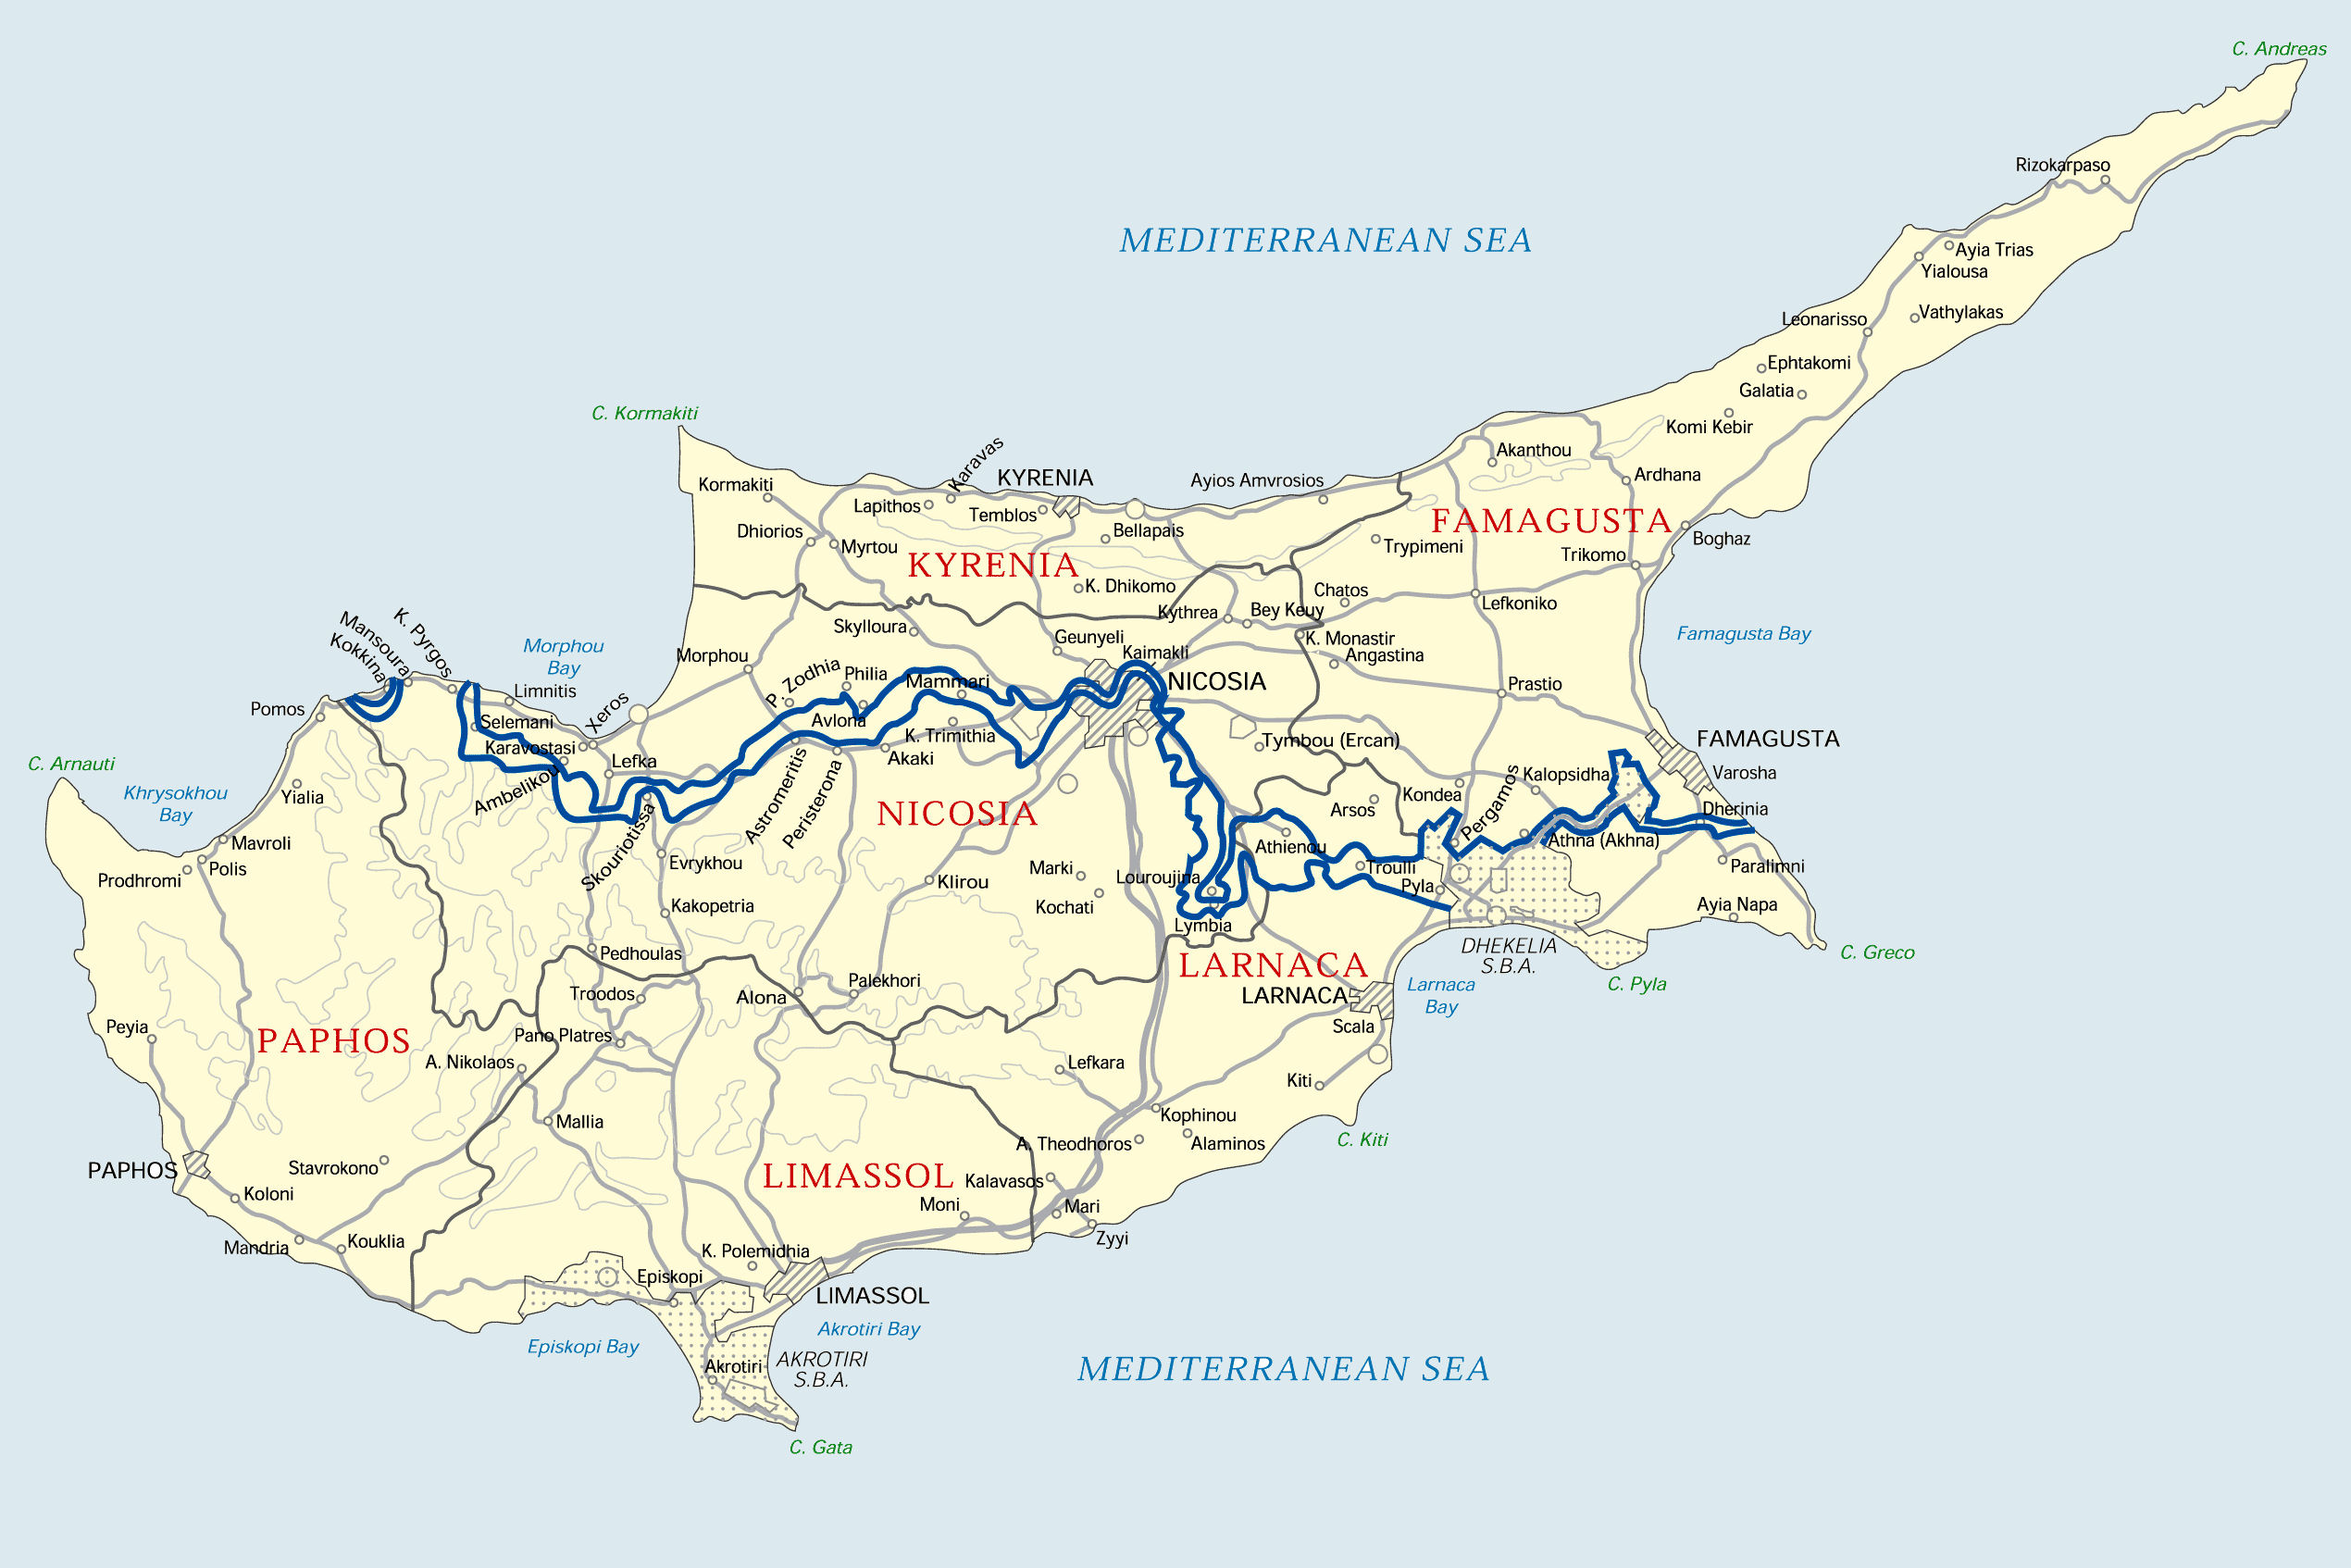 Republic of Cyprus: Green Line